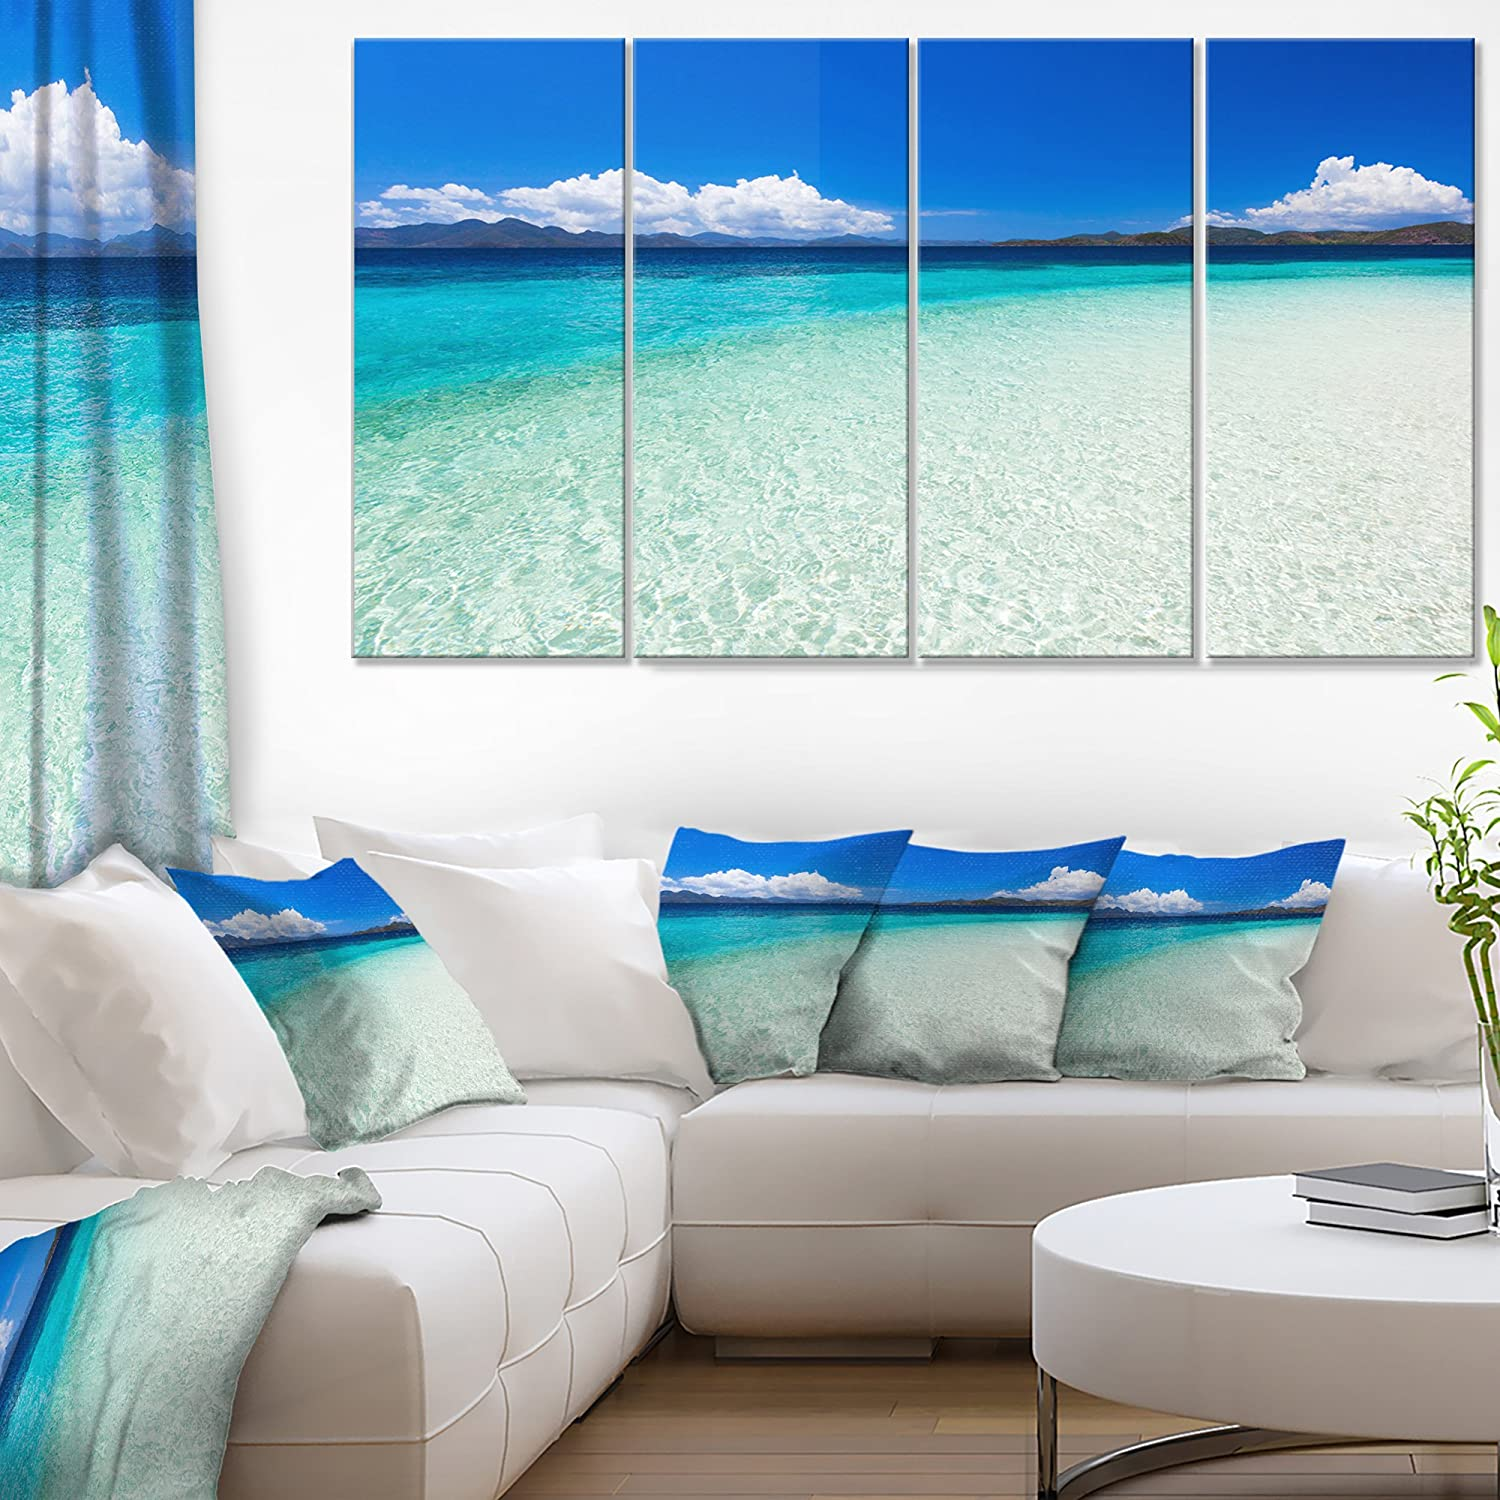 Designart Vacant Beach With Turquoise Water Seashore Canvas Wall Artwork 48x28 4 Piece Pt9919 271 28 H X 48 W X 1 D 4p Posters Prints